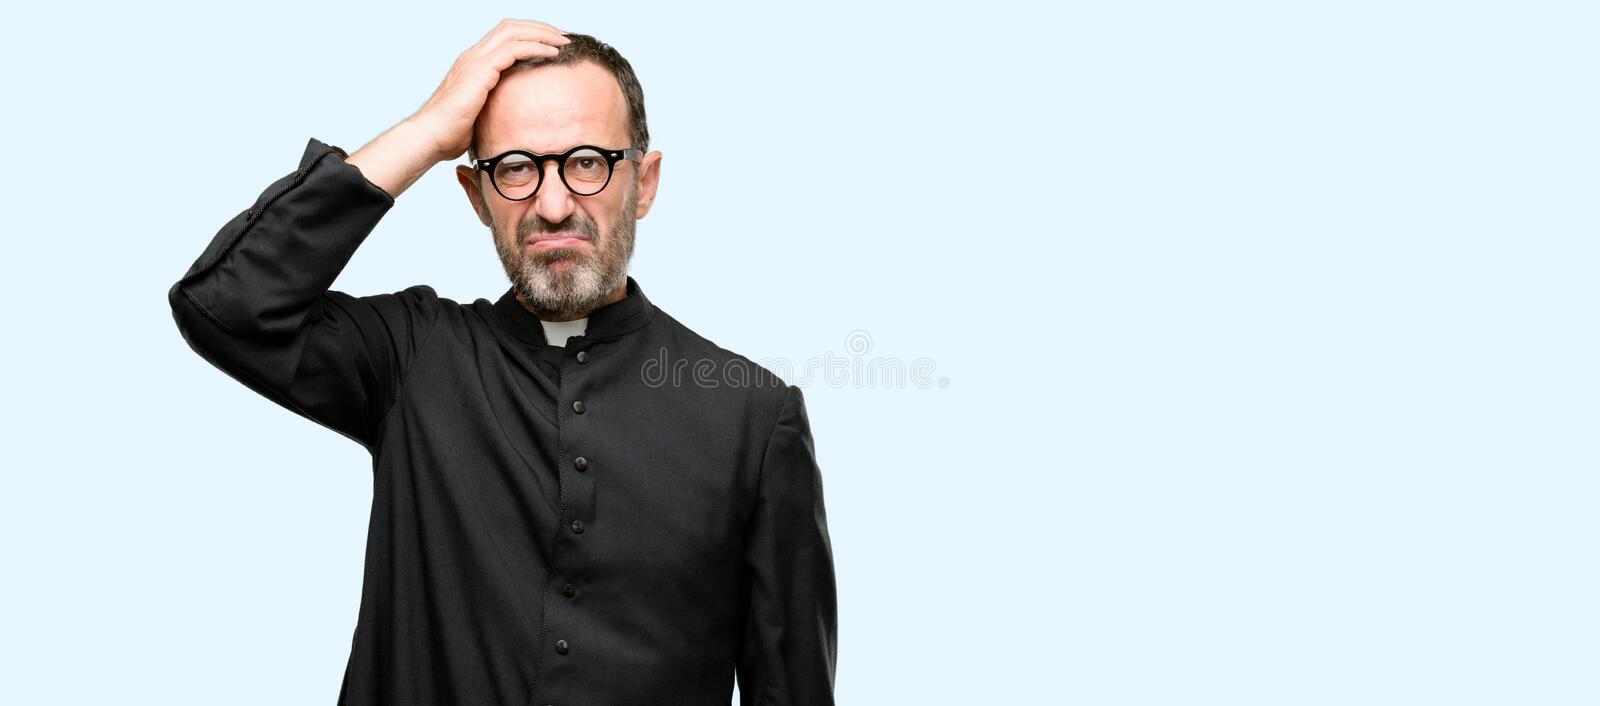 Handsome senior man isolated over blue background. Priest religion man doubt expression, confuse and wonder concept, uncertain future isolated over blue royalty free stock images